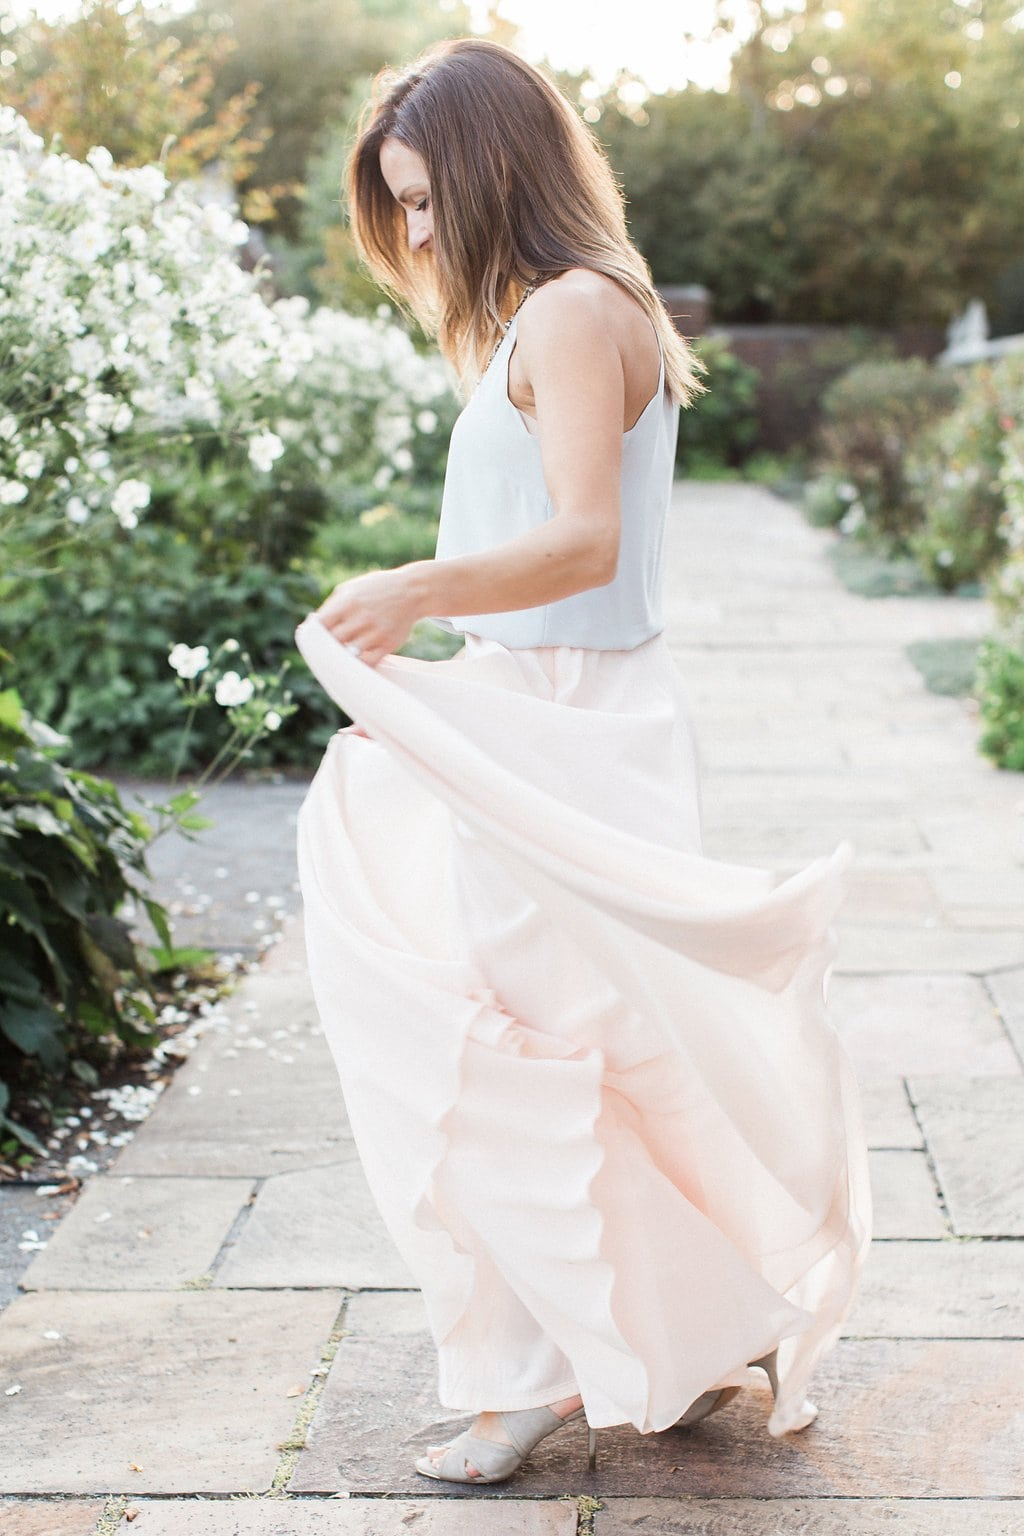 Bride dancing in the park wearing a light pink flowy skirt and grey sleeveless top